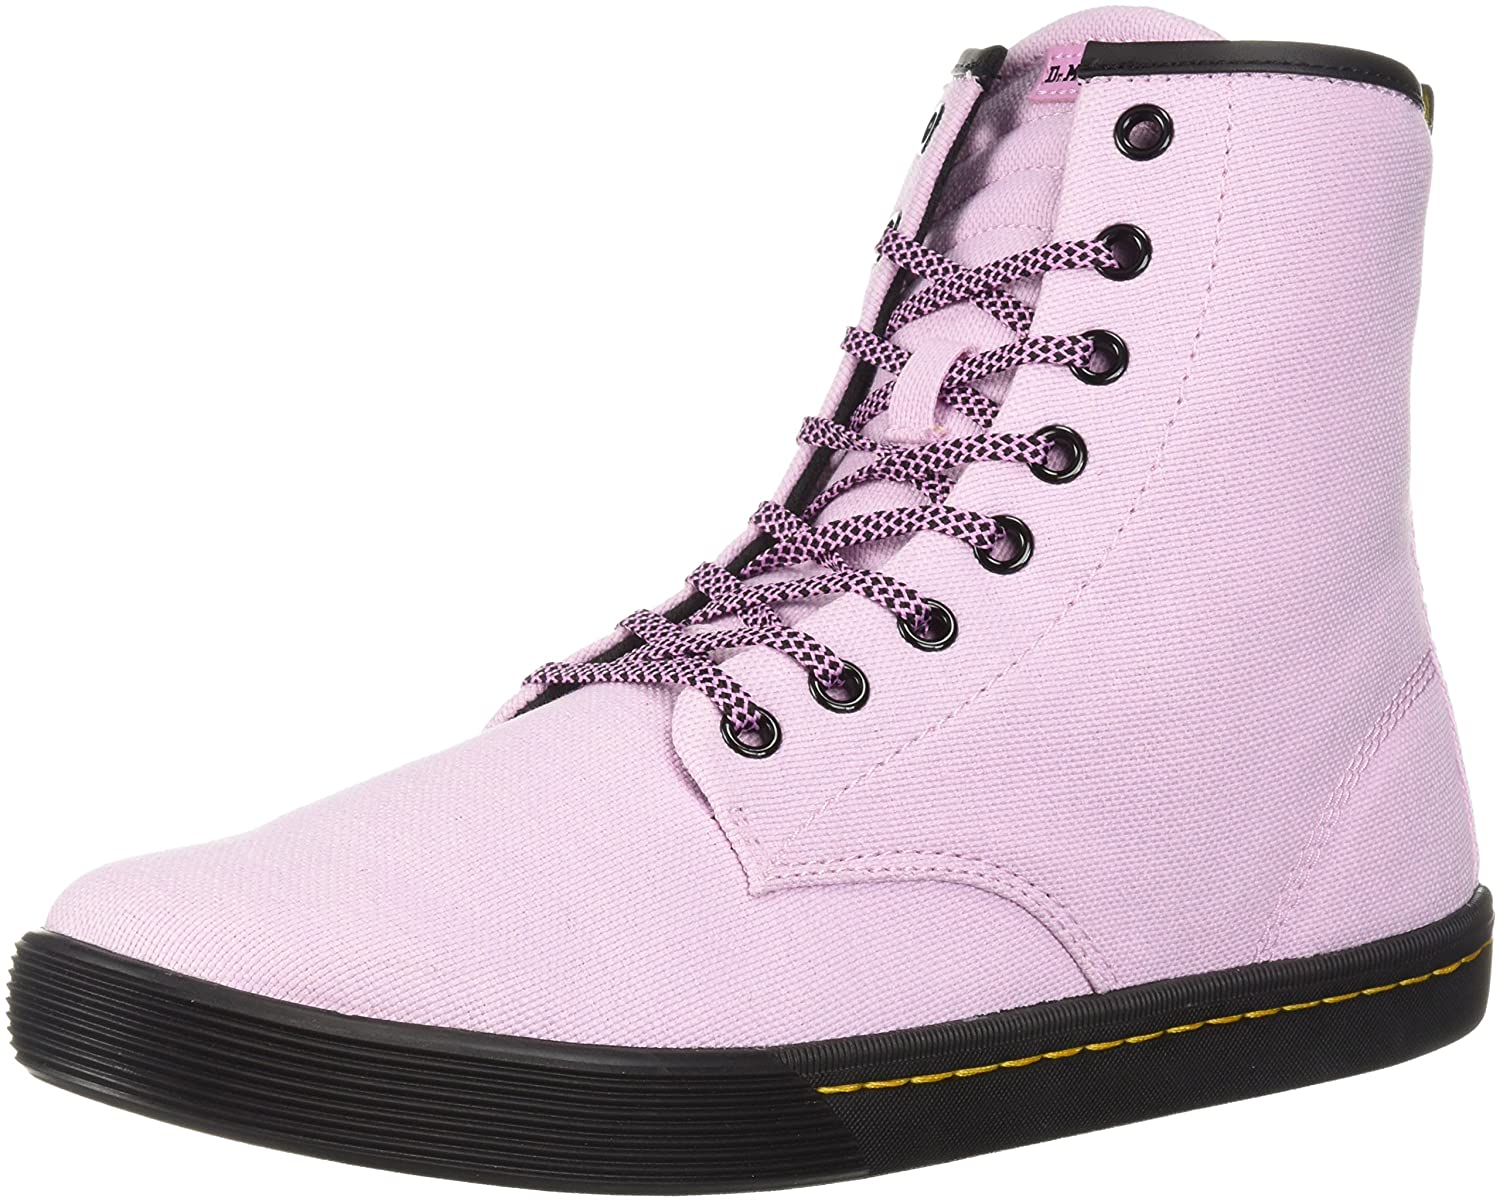 Dr. Martens Women's Sheridan Fashion Boot B072KGZ78Q 7 Medium UK (9 US)|Mallow Pink Woven Textile